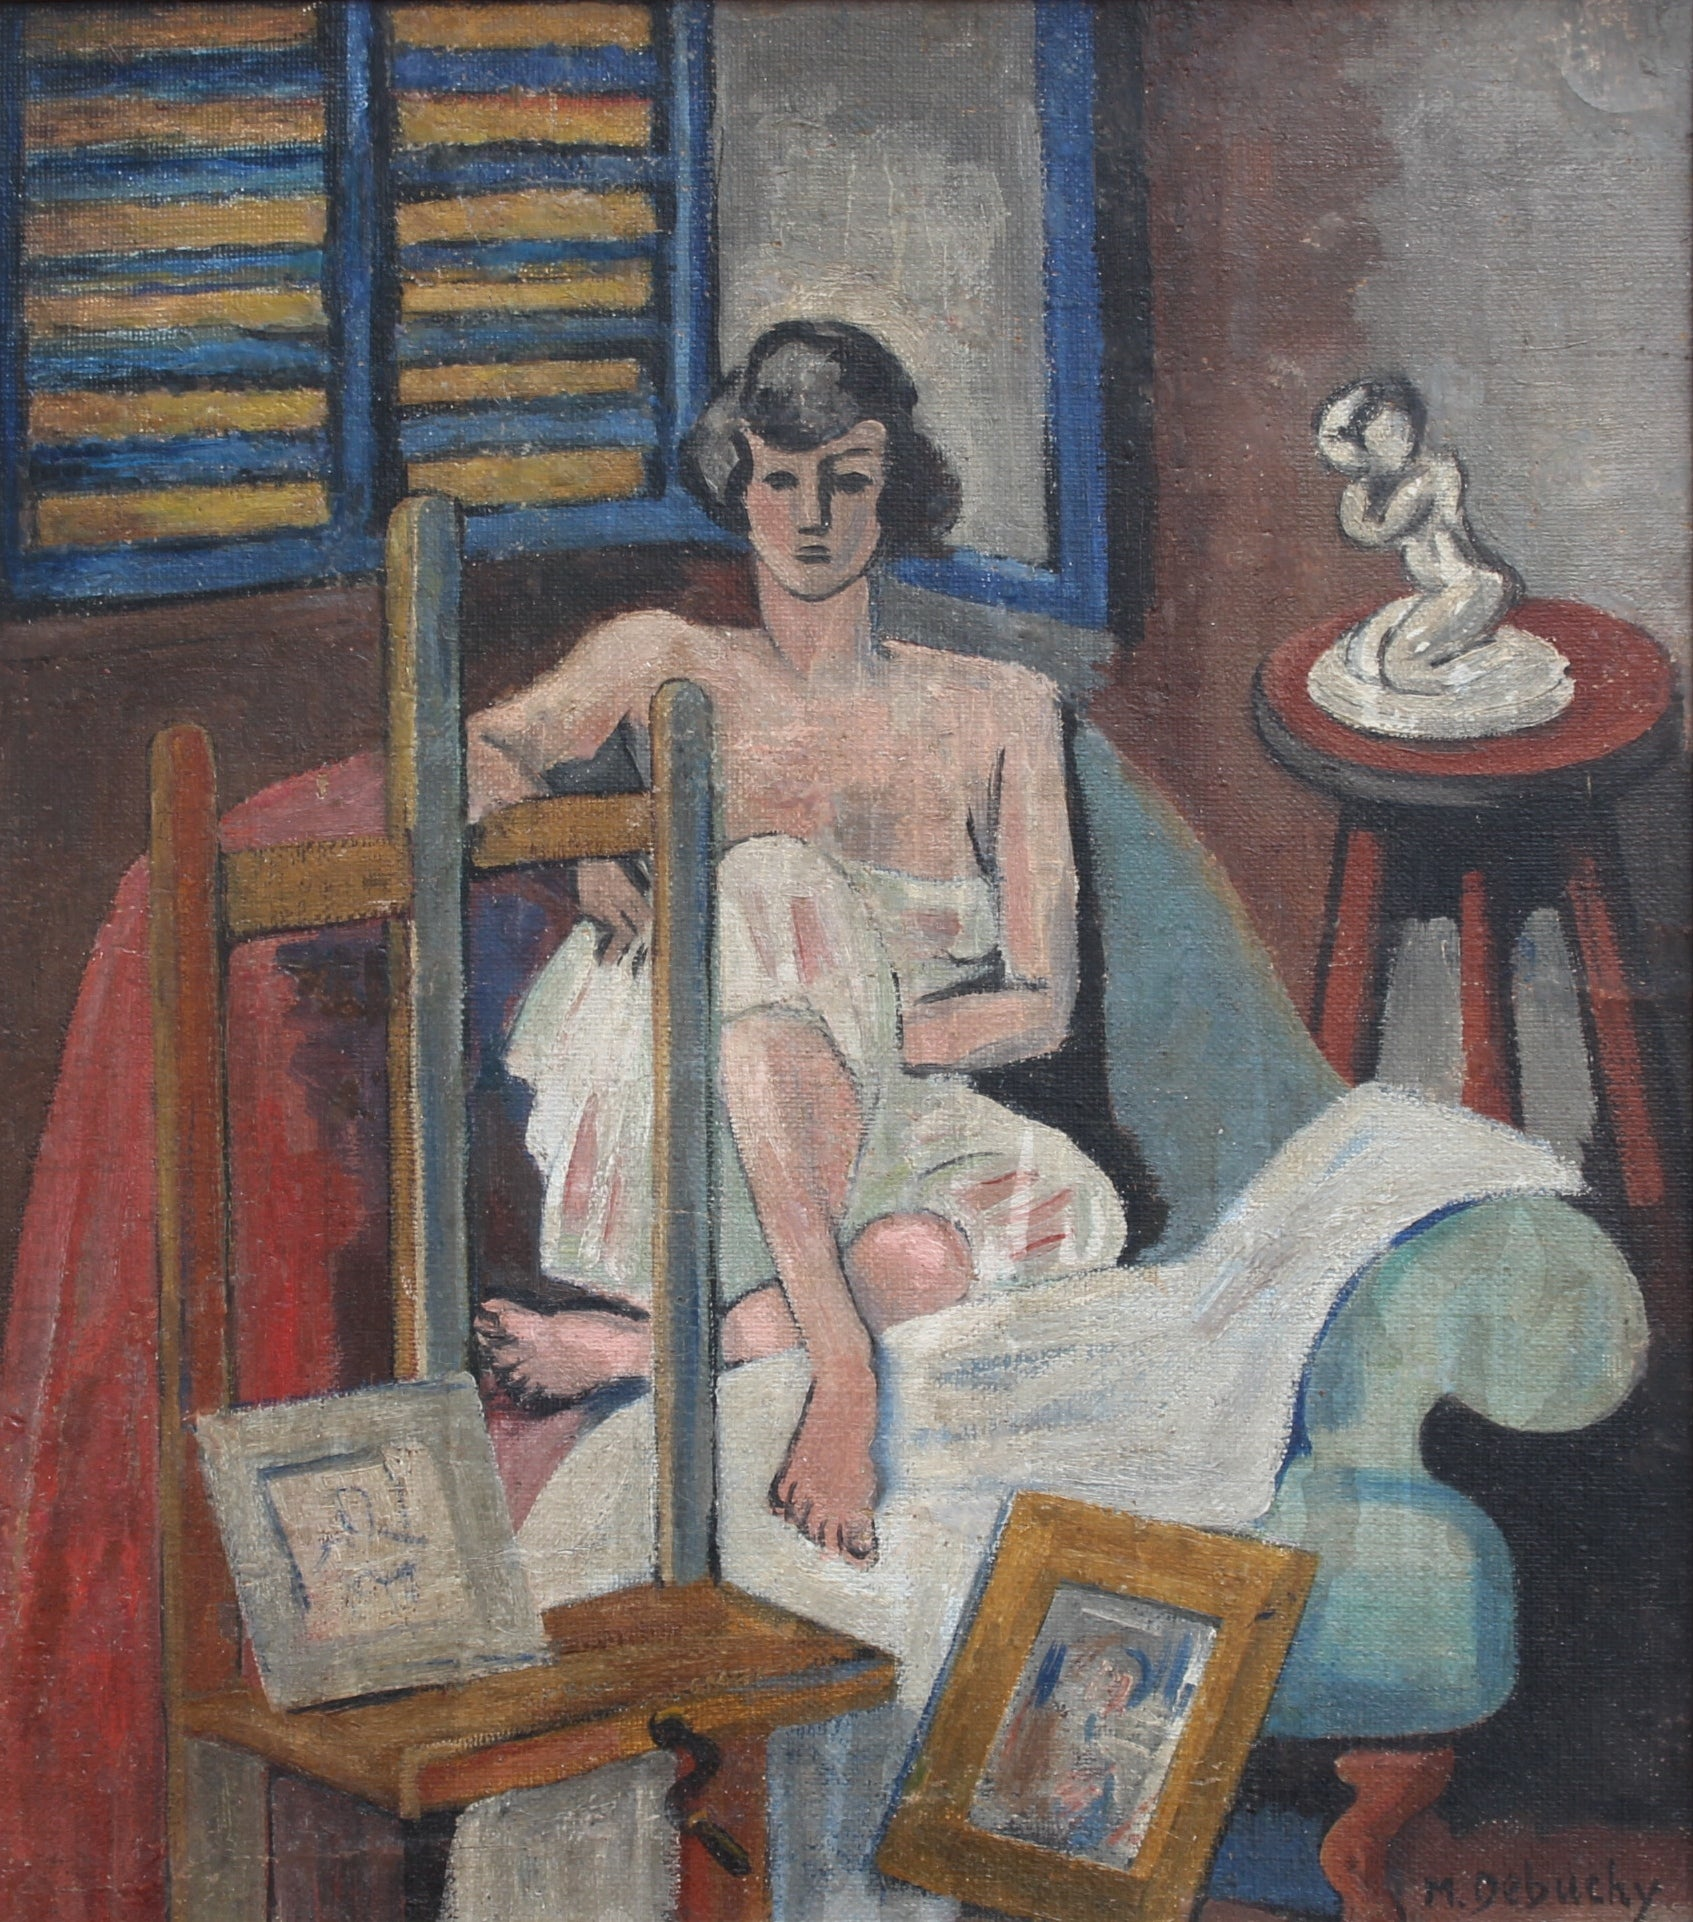 'Seated Woman' by M. Debuchy (c. 1930s)